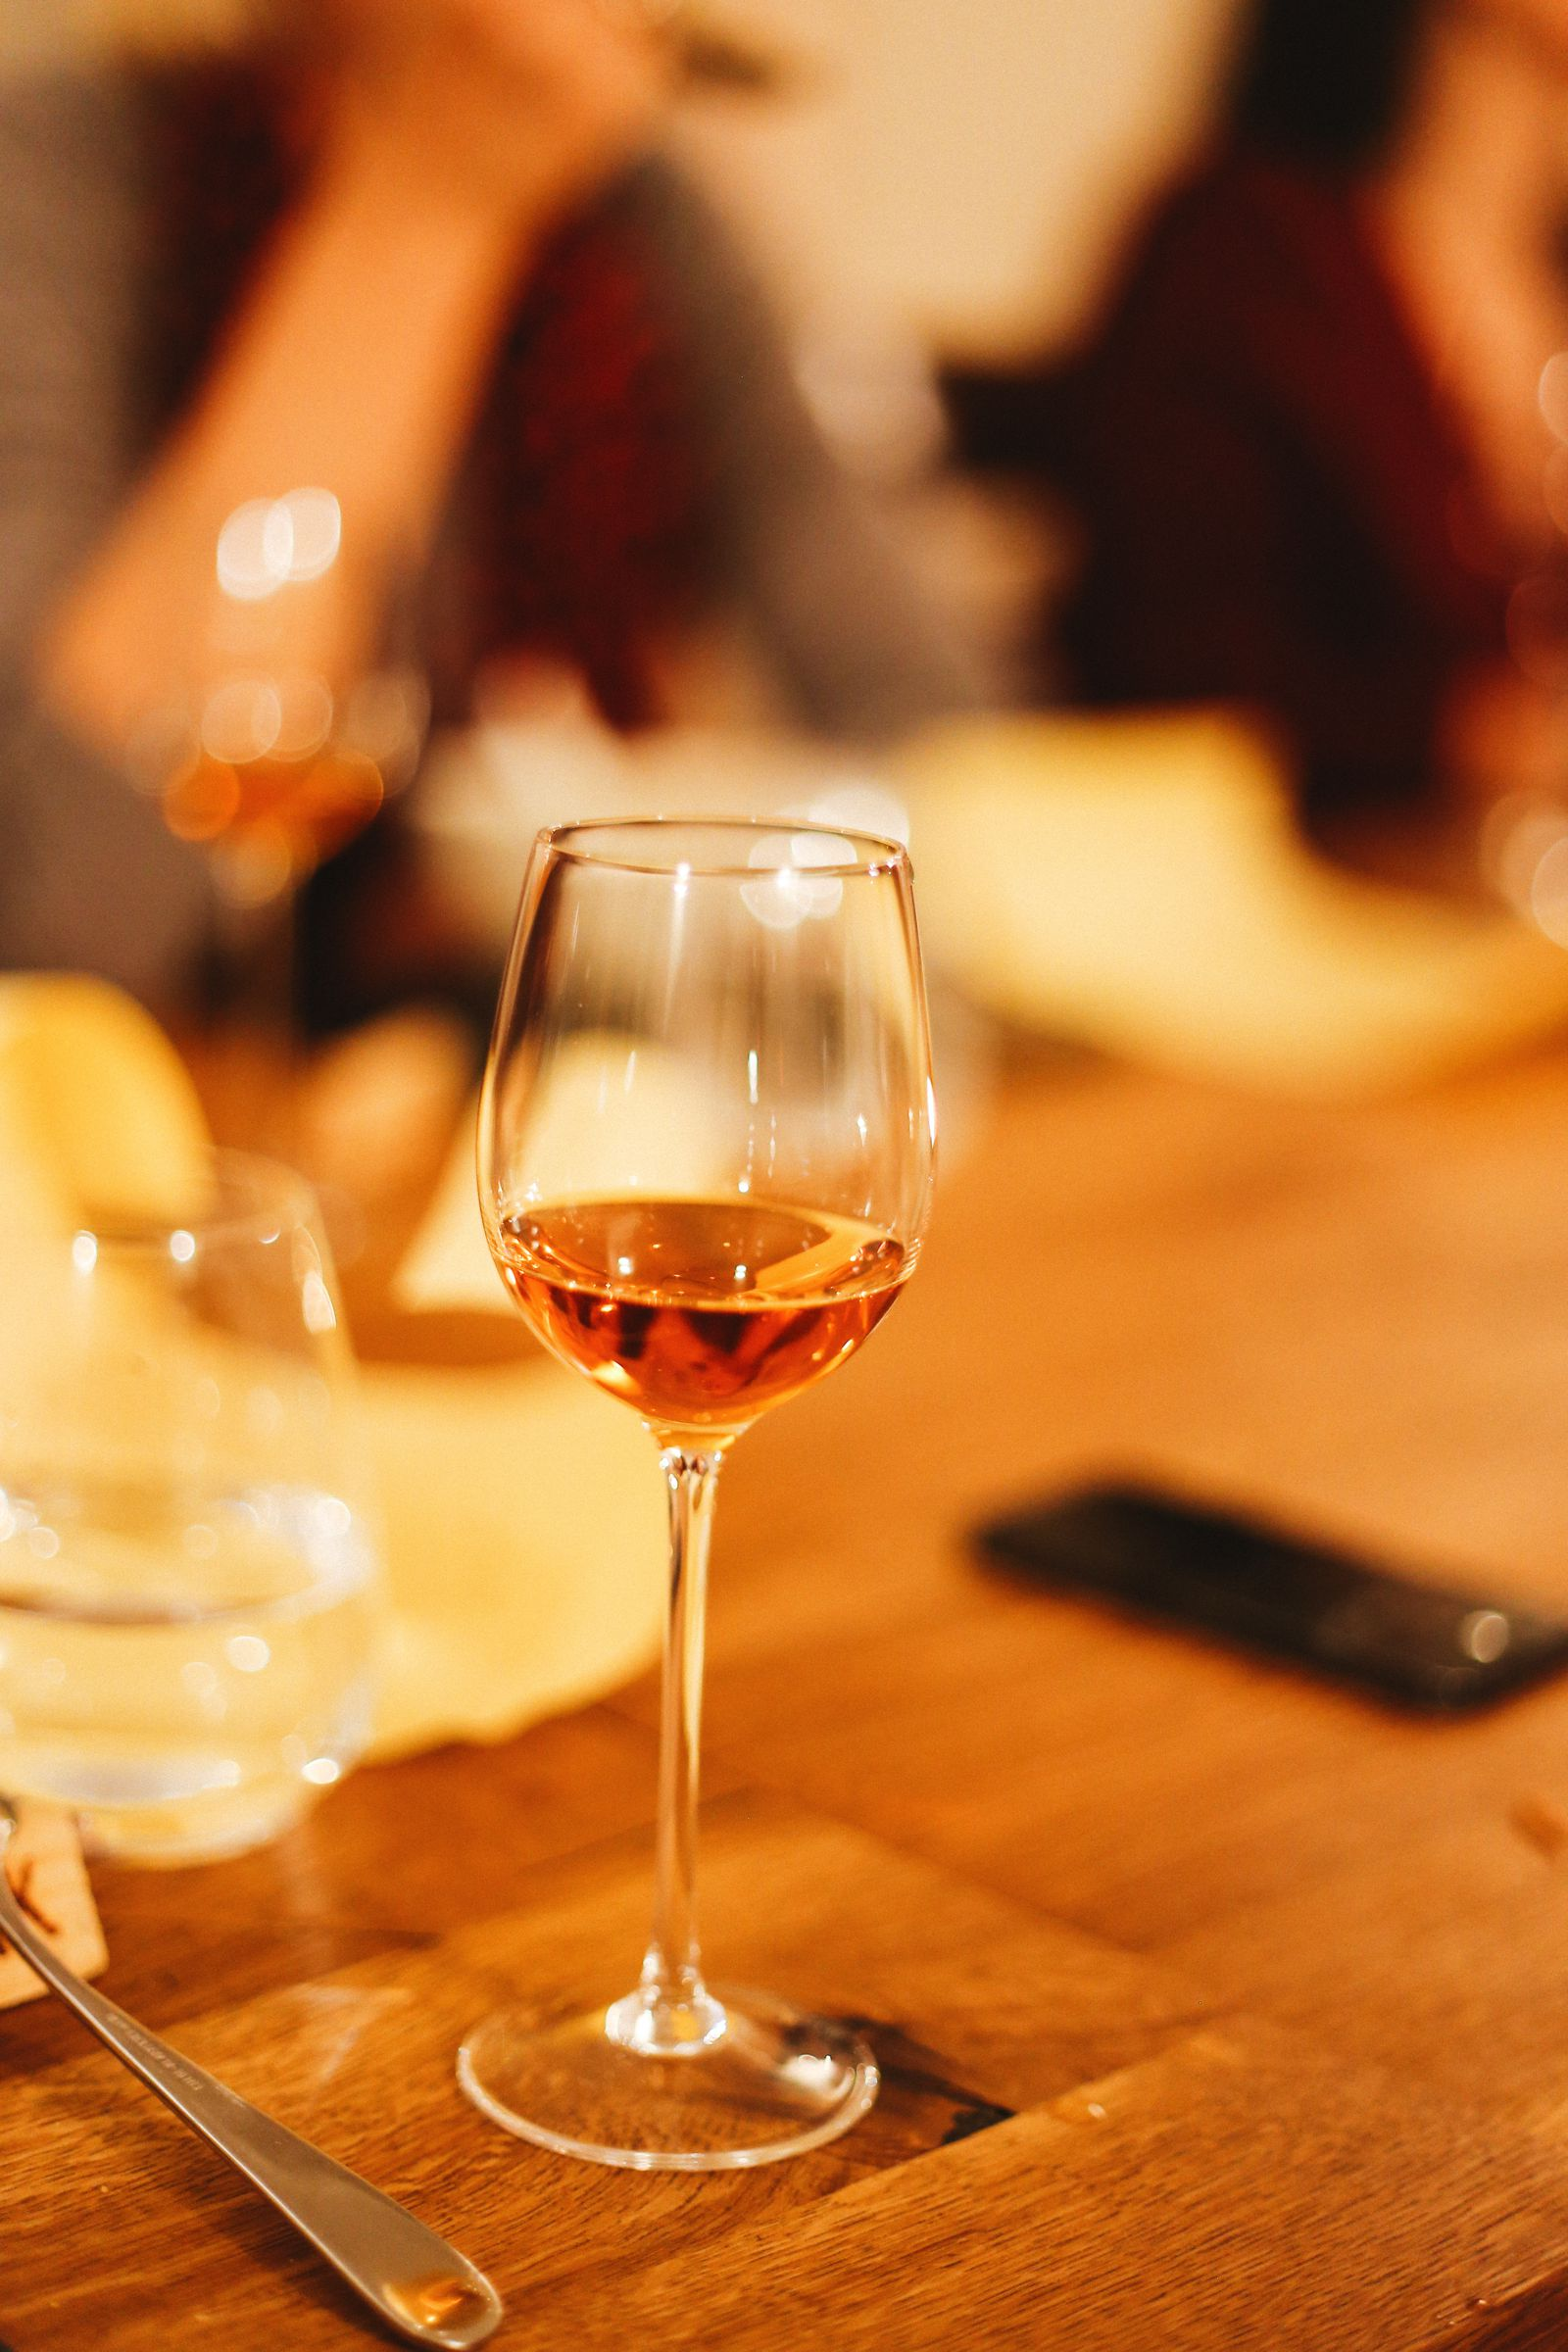 There's A Big Reason You Should Visit Slovenia This Year - The Wine! (39)